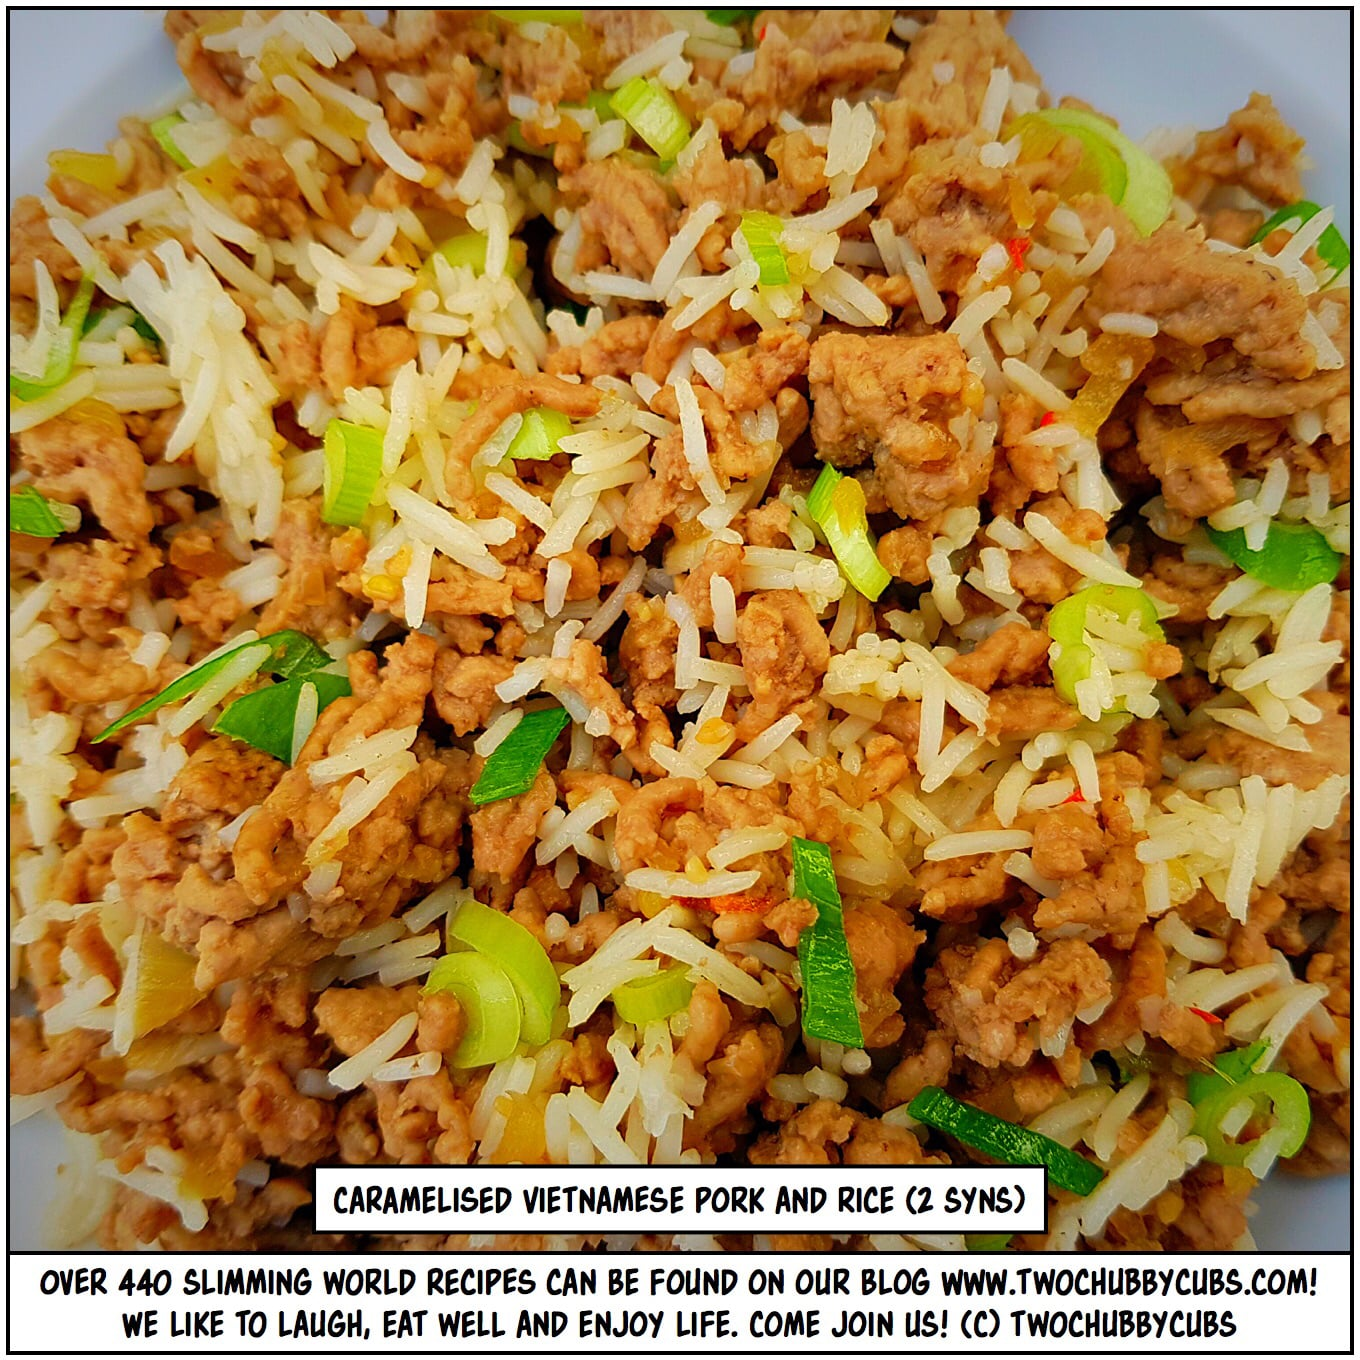 TWO SYN CARAMELISED PORK AND RICE | Slimming World | twochubbycubs